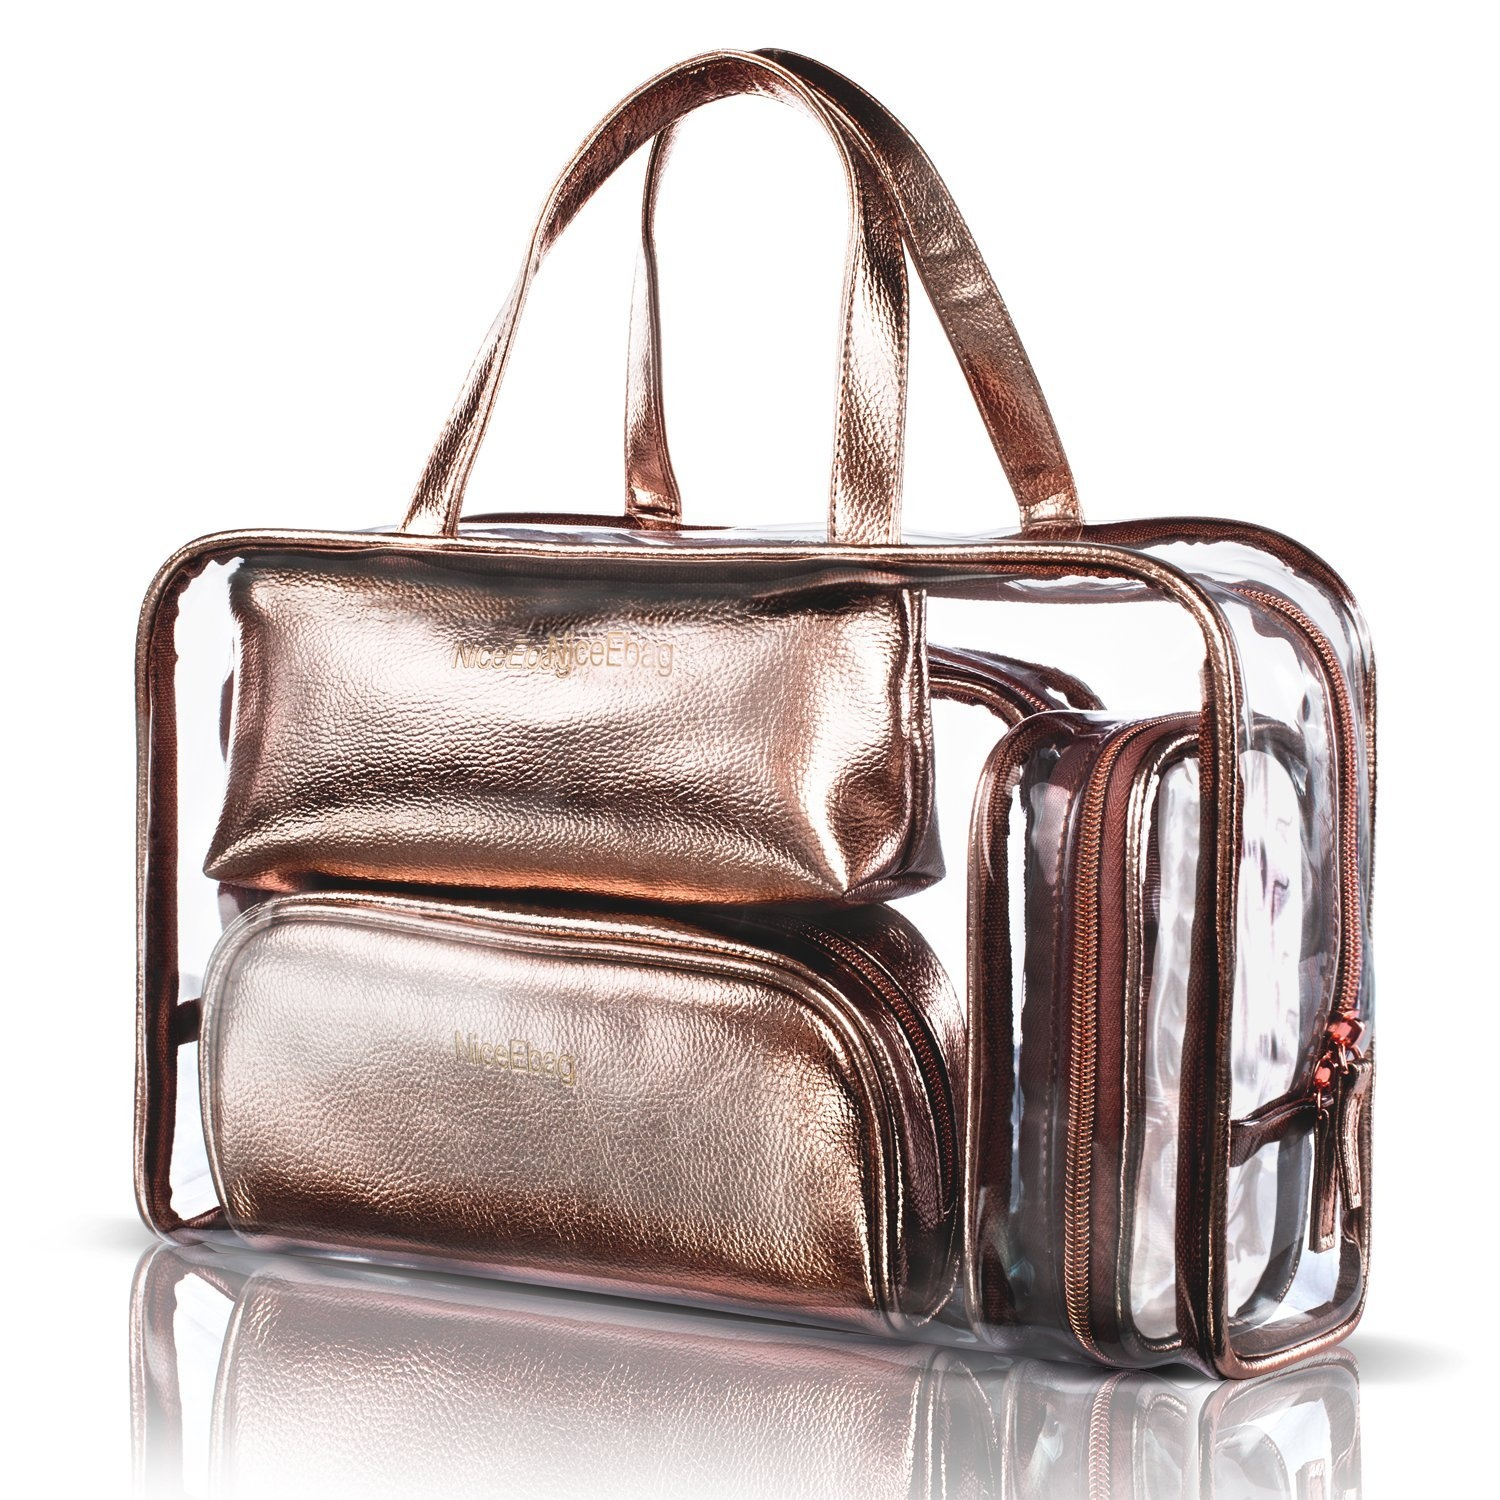 715aac51269e NiceEbag 5 in 1 Cosmetic Bag & Case Portable Carry on Travel Toiletry Bag  Clear PVC Makeup Quart Luggage Pouch Handbag Organiser for Men and Women ...